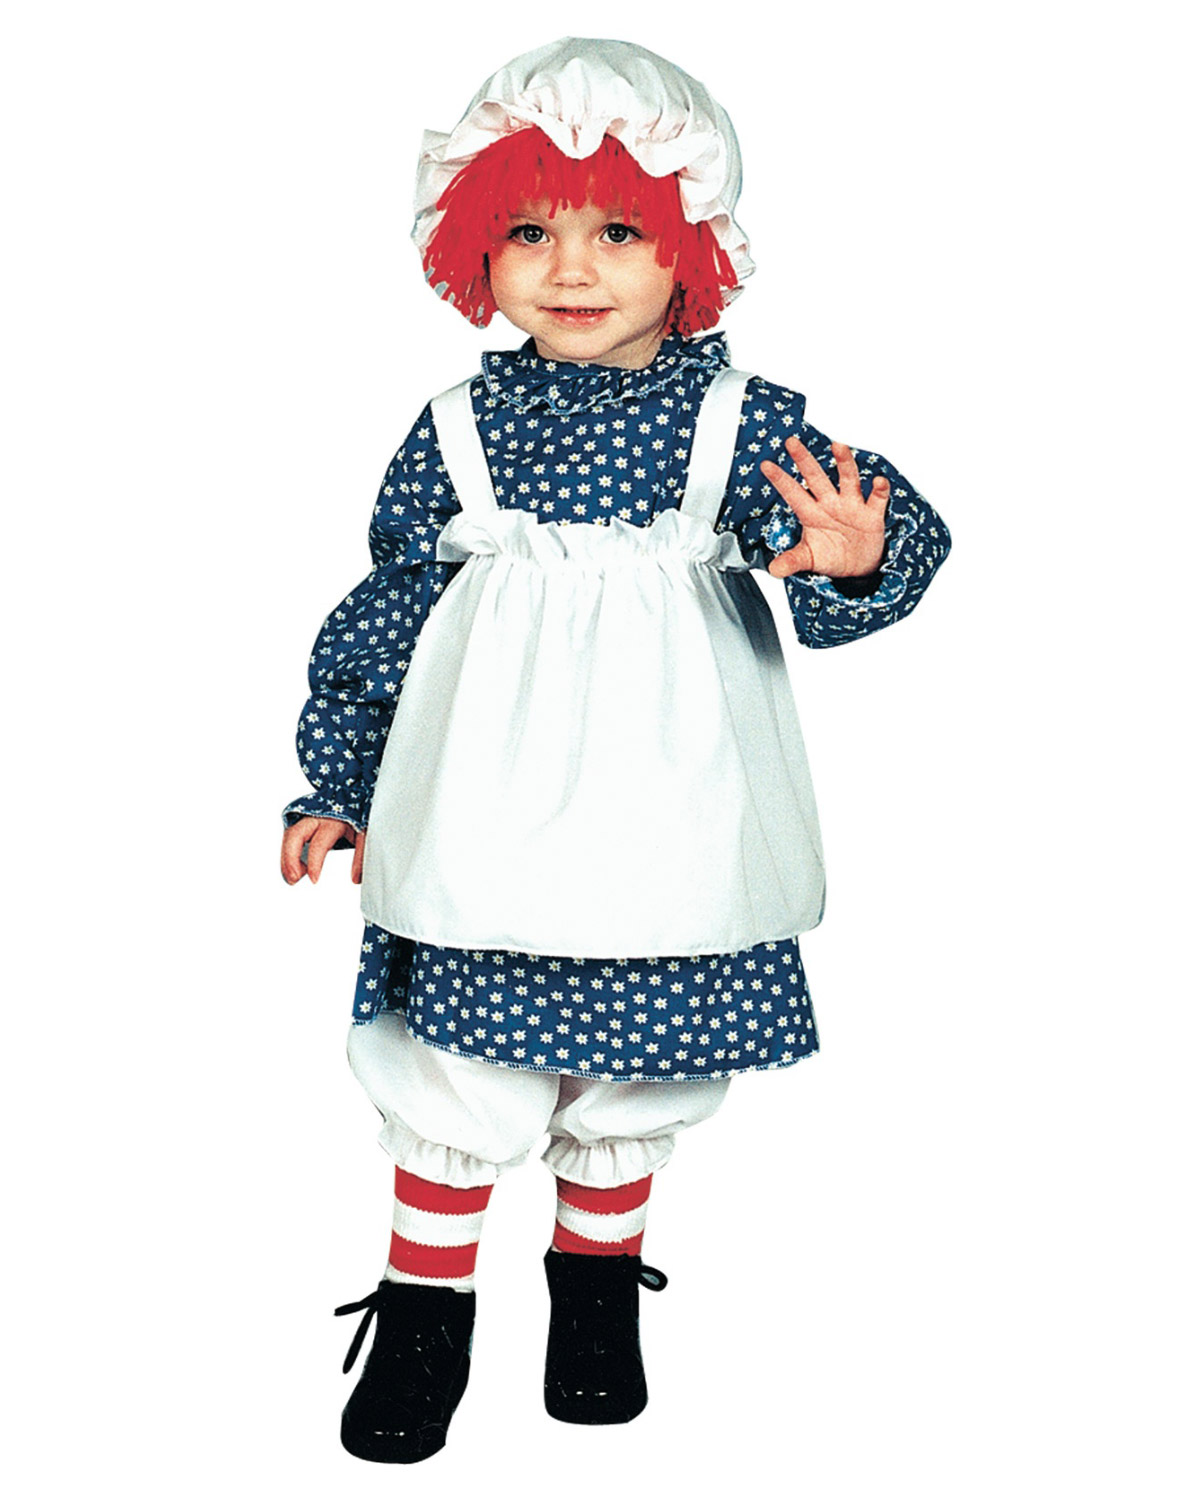 'Halloween Costumes 12117 Raggedy Ann Toddler 1 To 2'